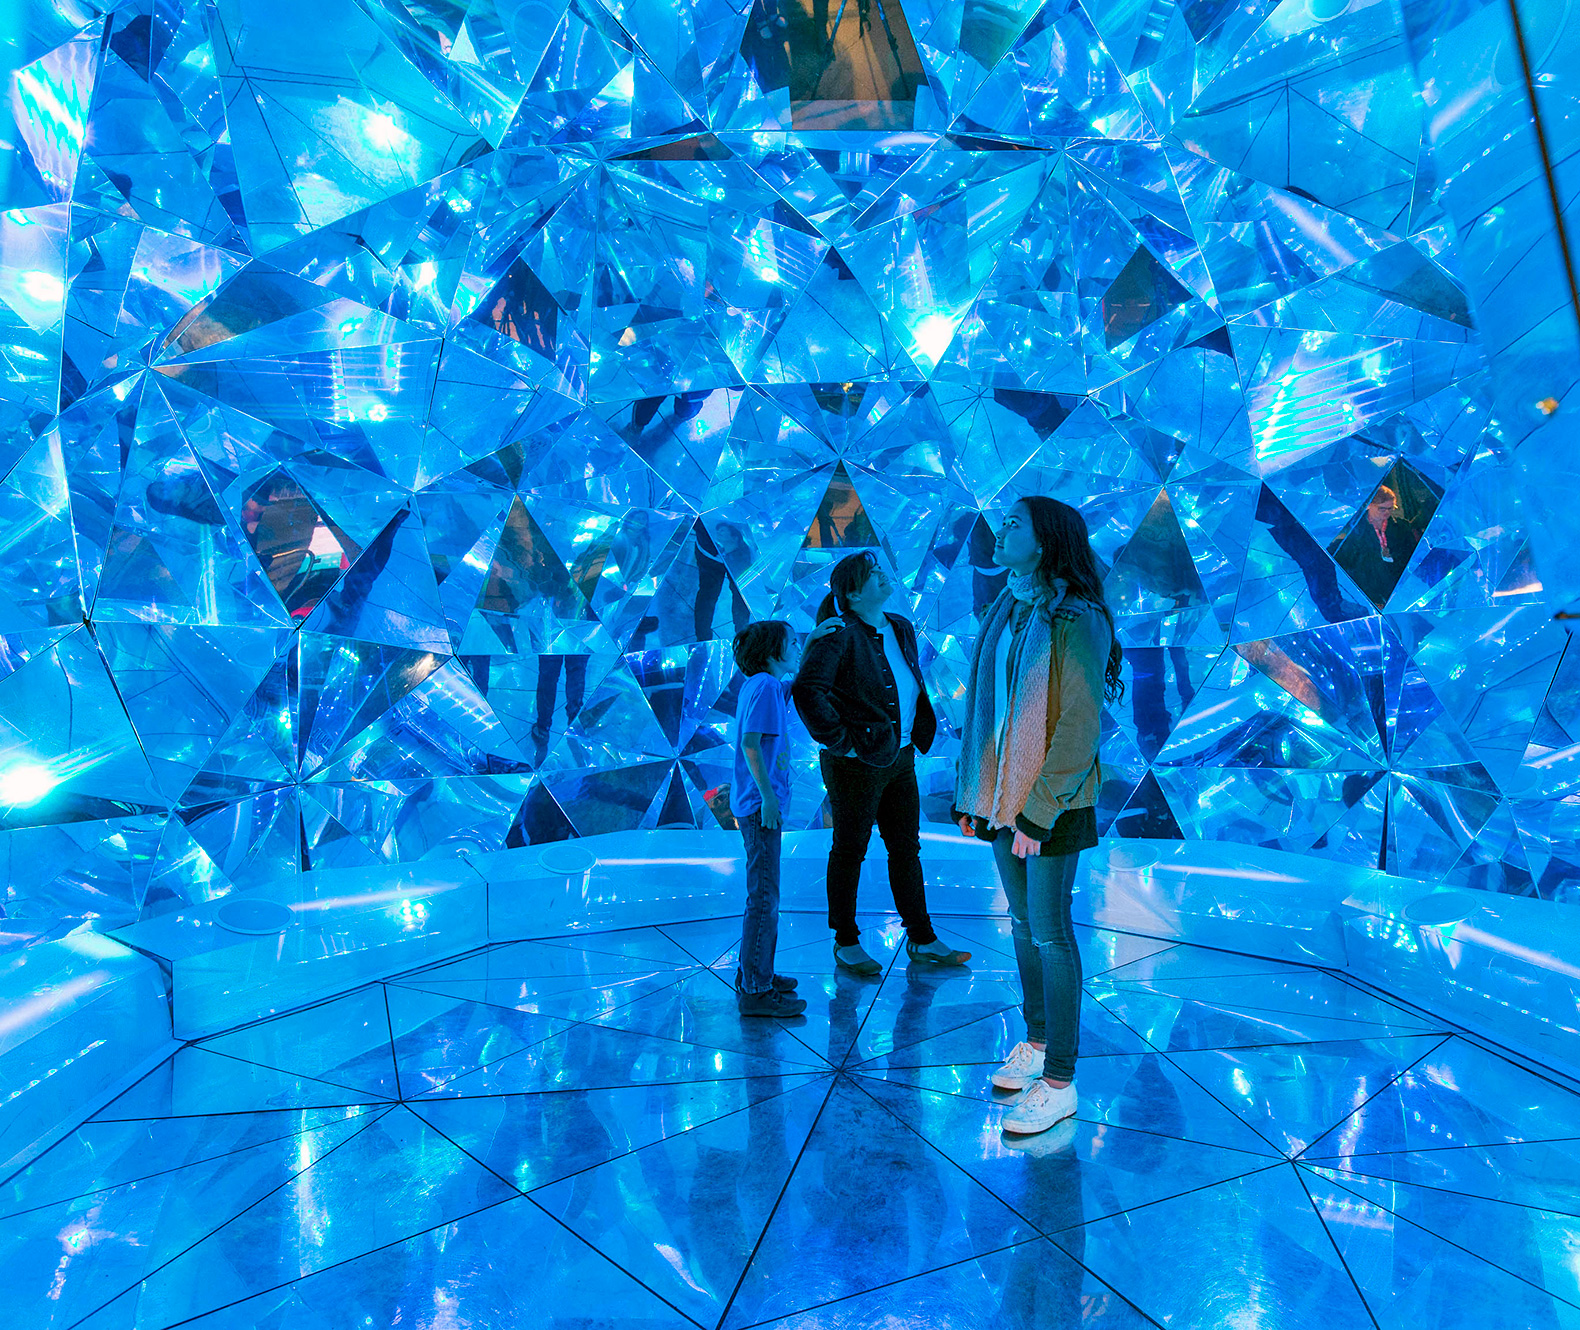 Sydney's mind-blowing 'Light Origami' is a crystal cavern filled with mirrors